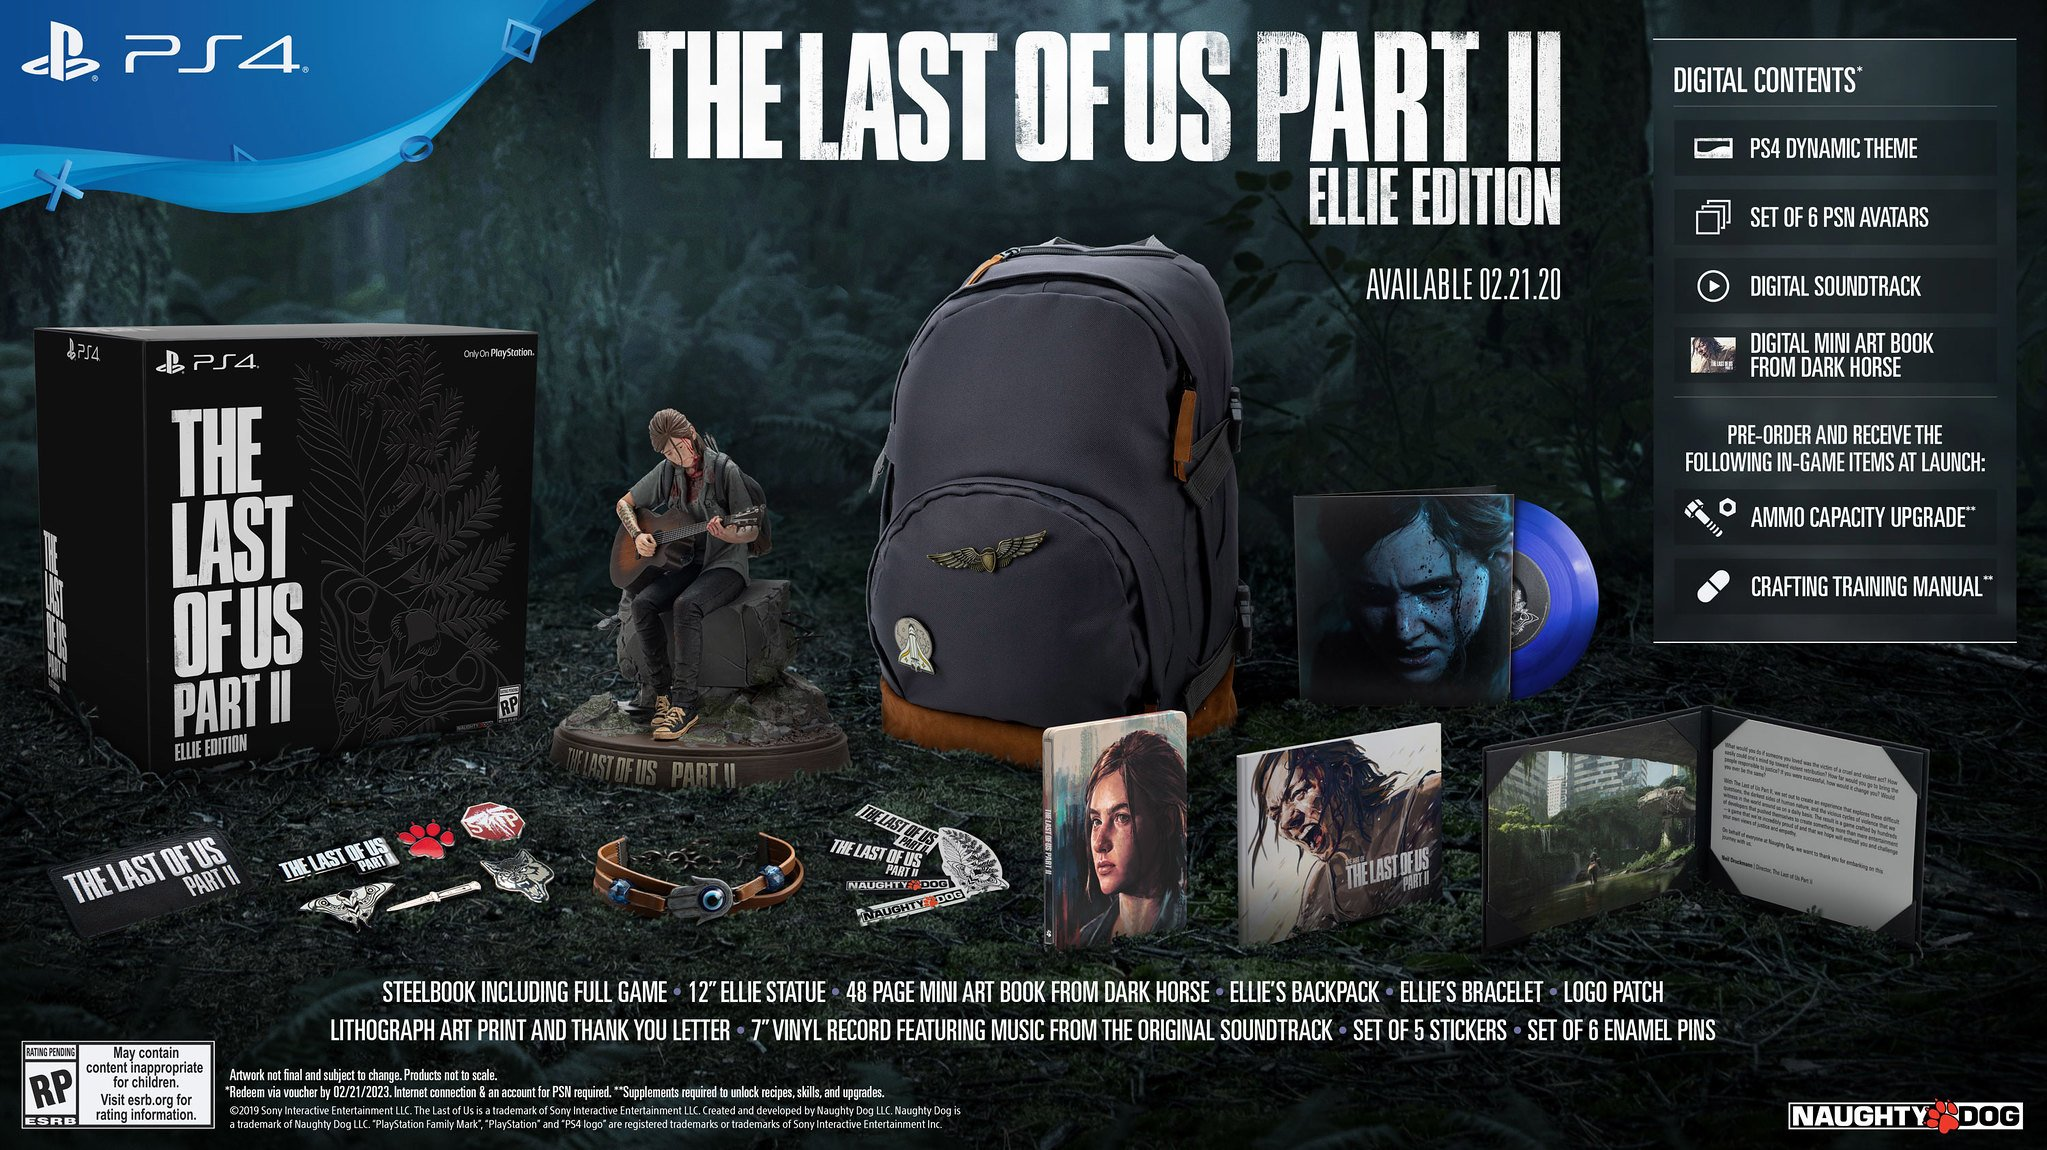 There are several versions of The Last of Us Part II available, including a special